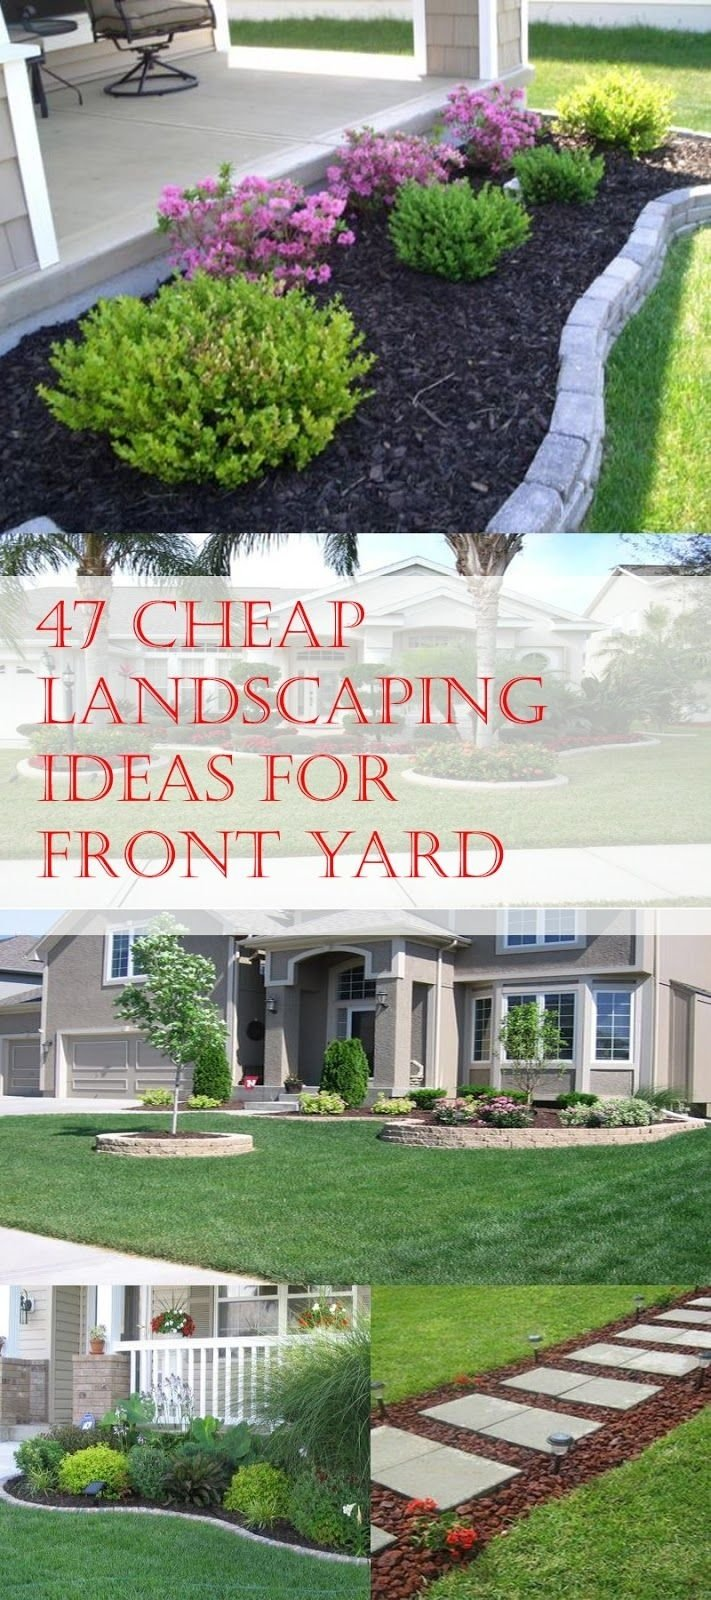 47 cheap landscaping ideas for front yard | cheap landscaping ideas